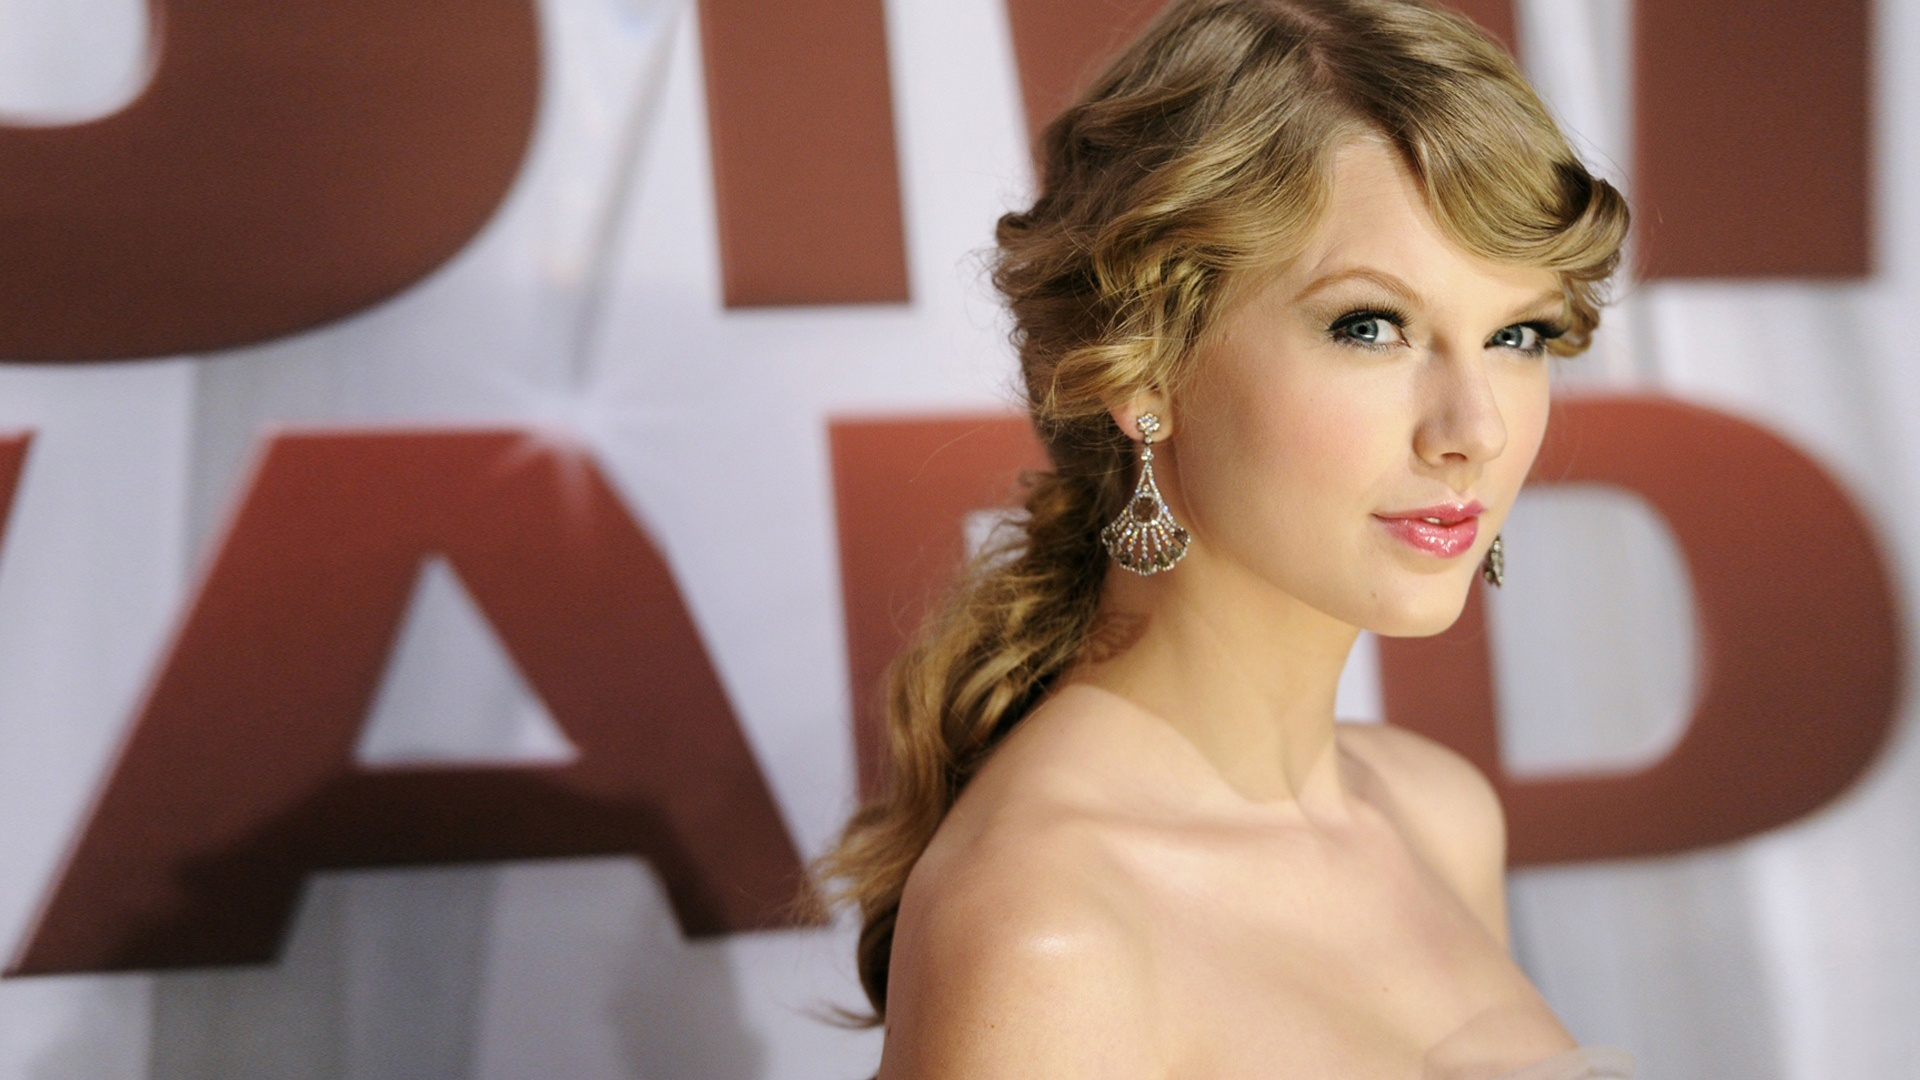 taylor swift wallpapers hd A4